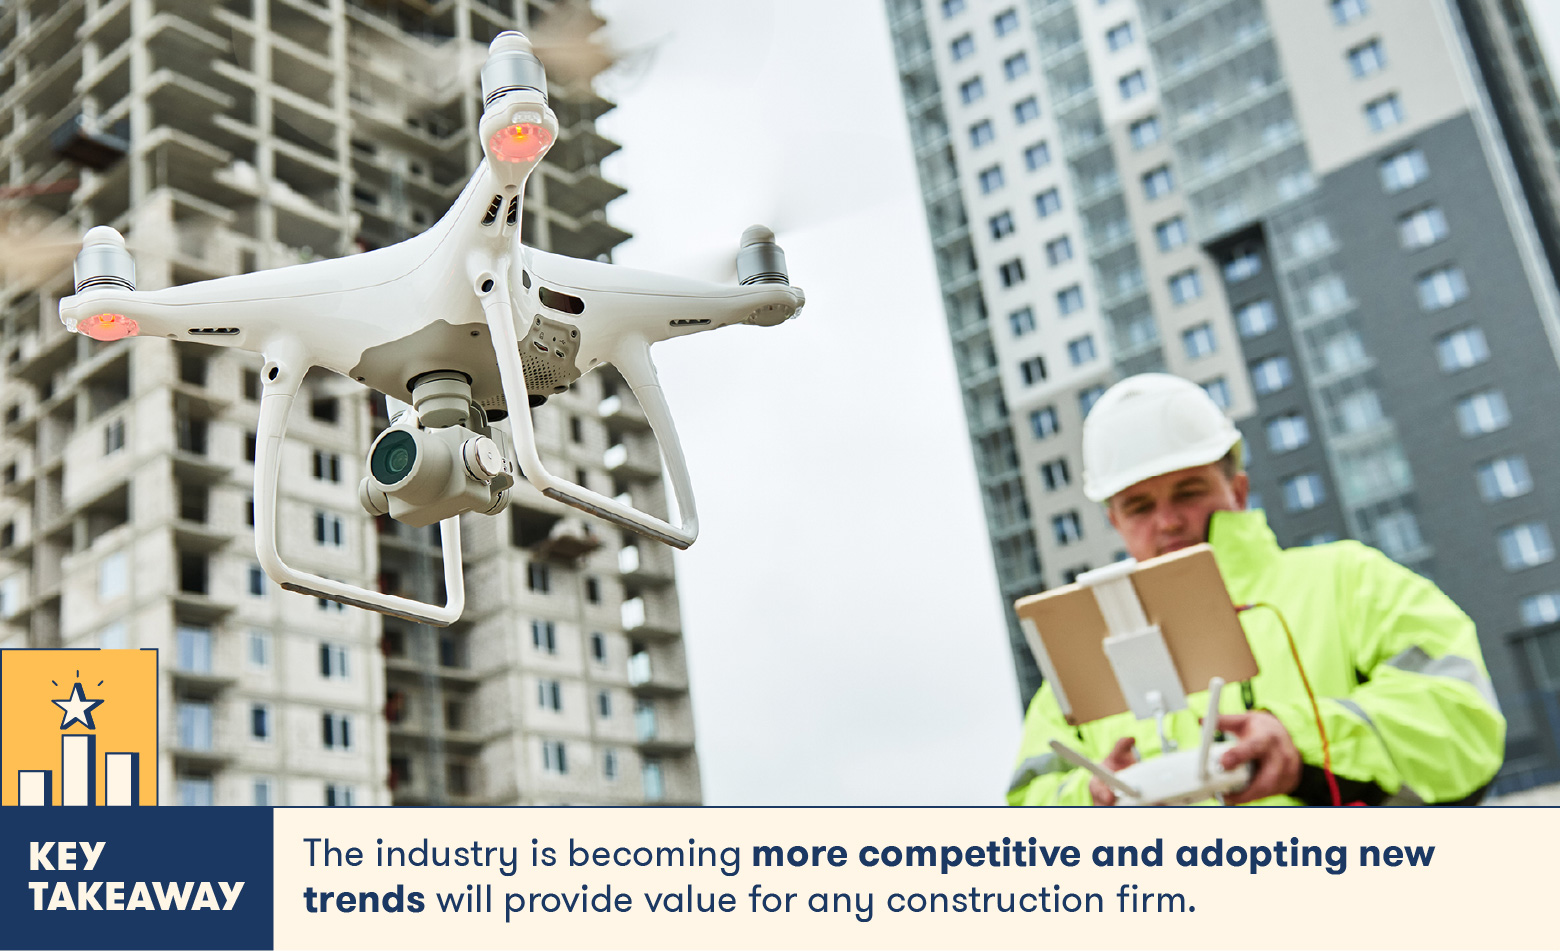 construction industry is becoming more competitive